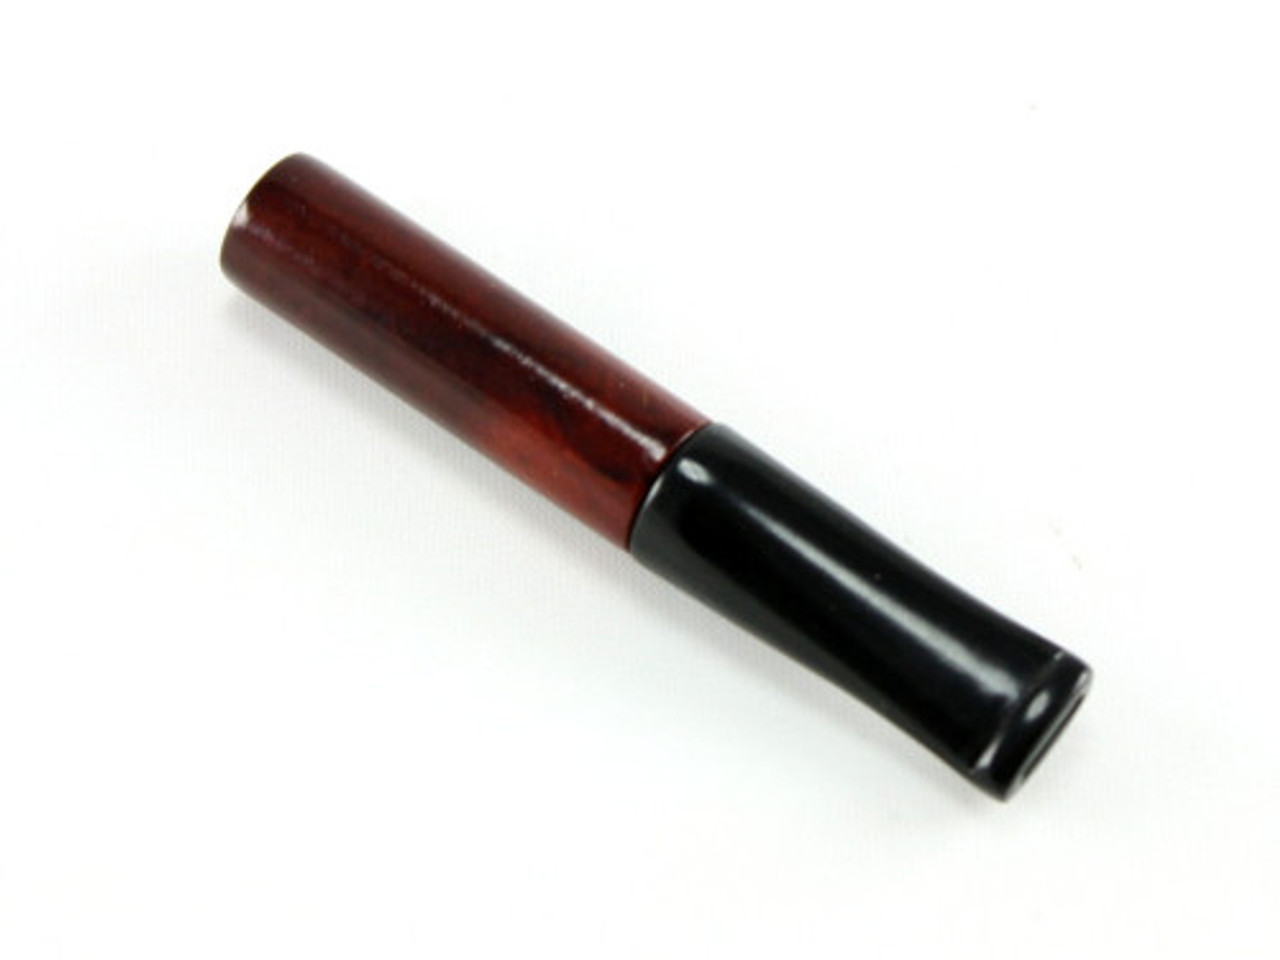 Maxim Rosewood Cigarette Holder with Cleanable Filter